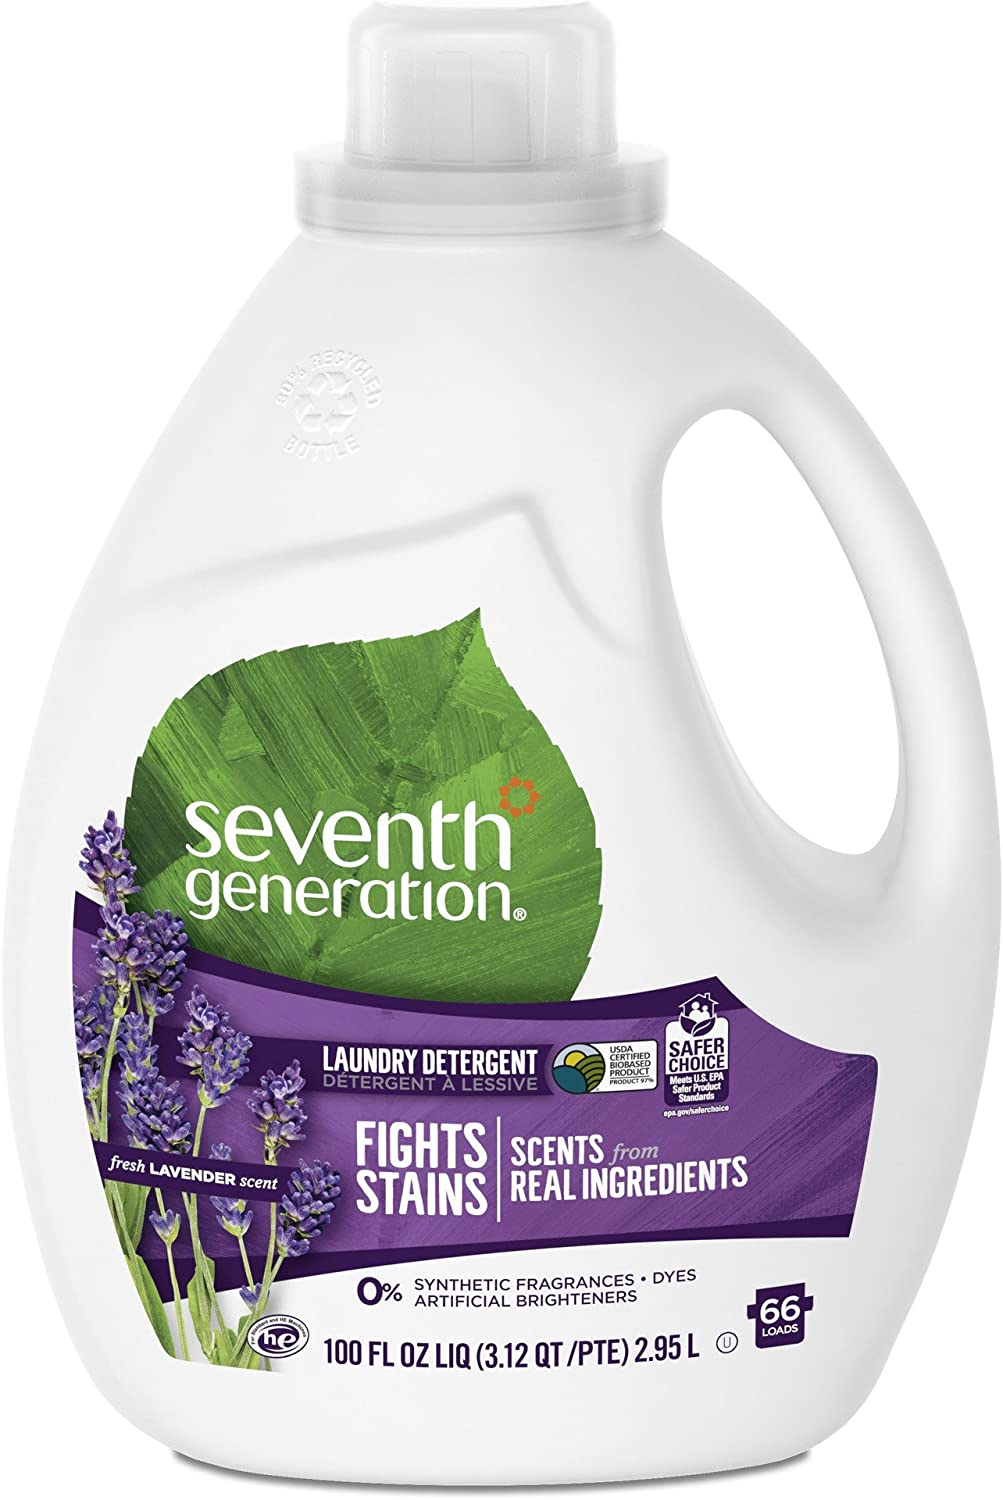 Seventh Generation Liquid Laundry Detergent, Fresh Lavender scent, 100 oz, 66 Loads (Packaging May Vary)